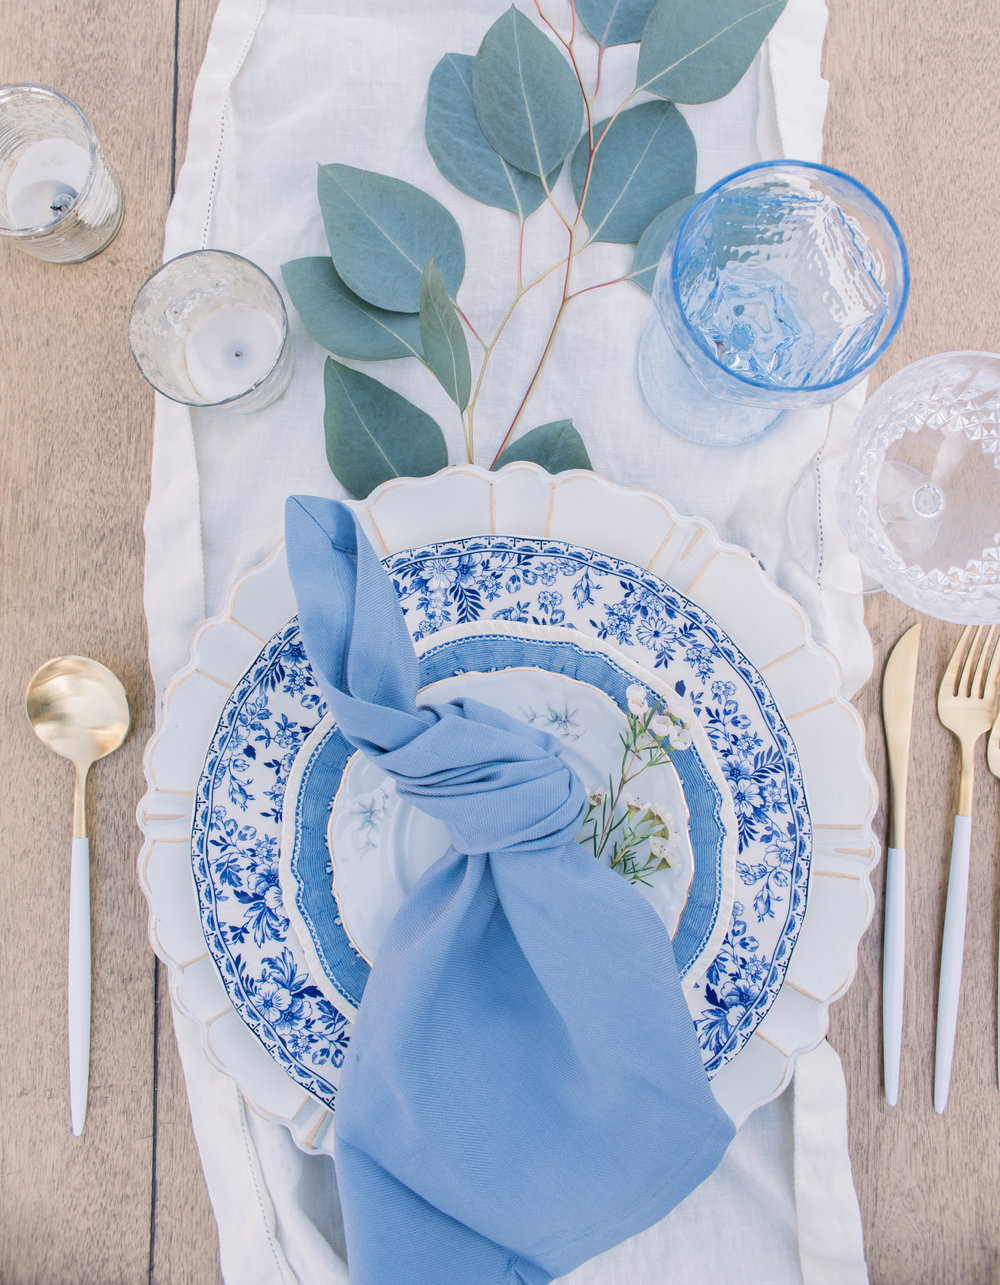 Tablescape-3.jpg